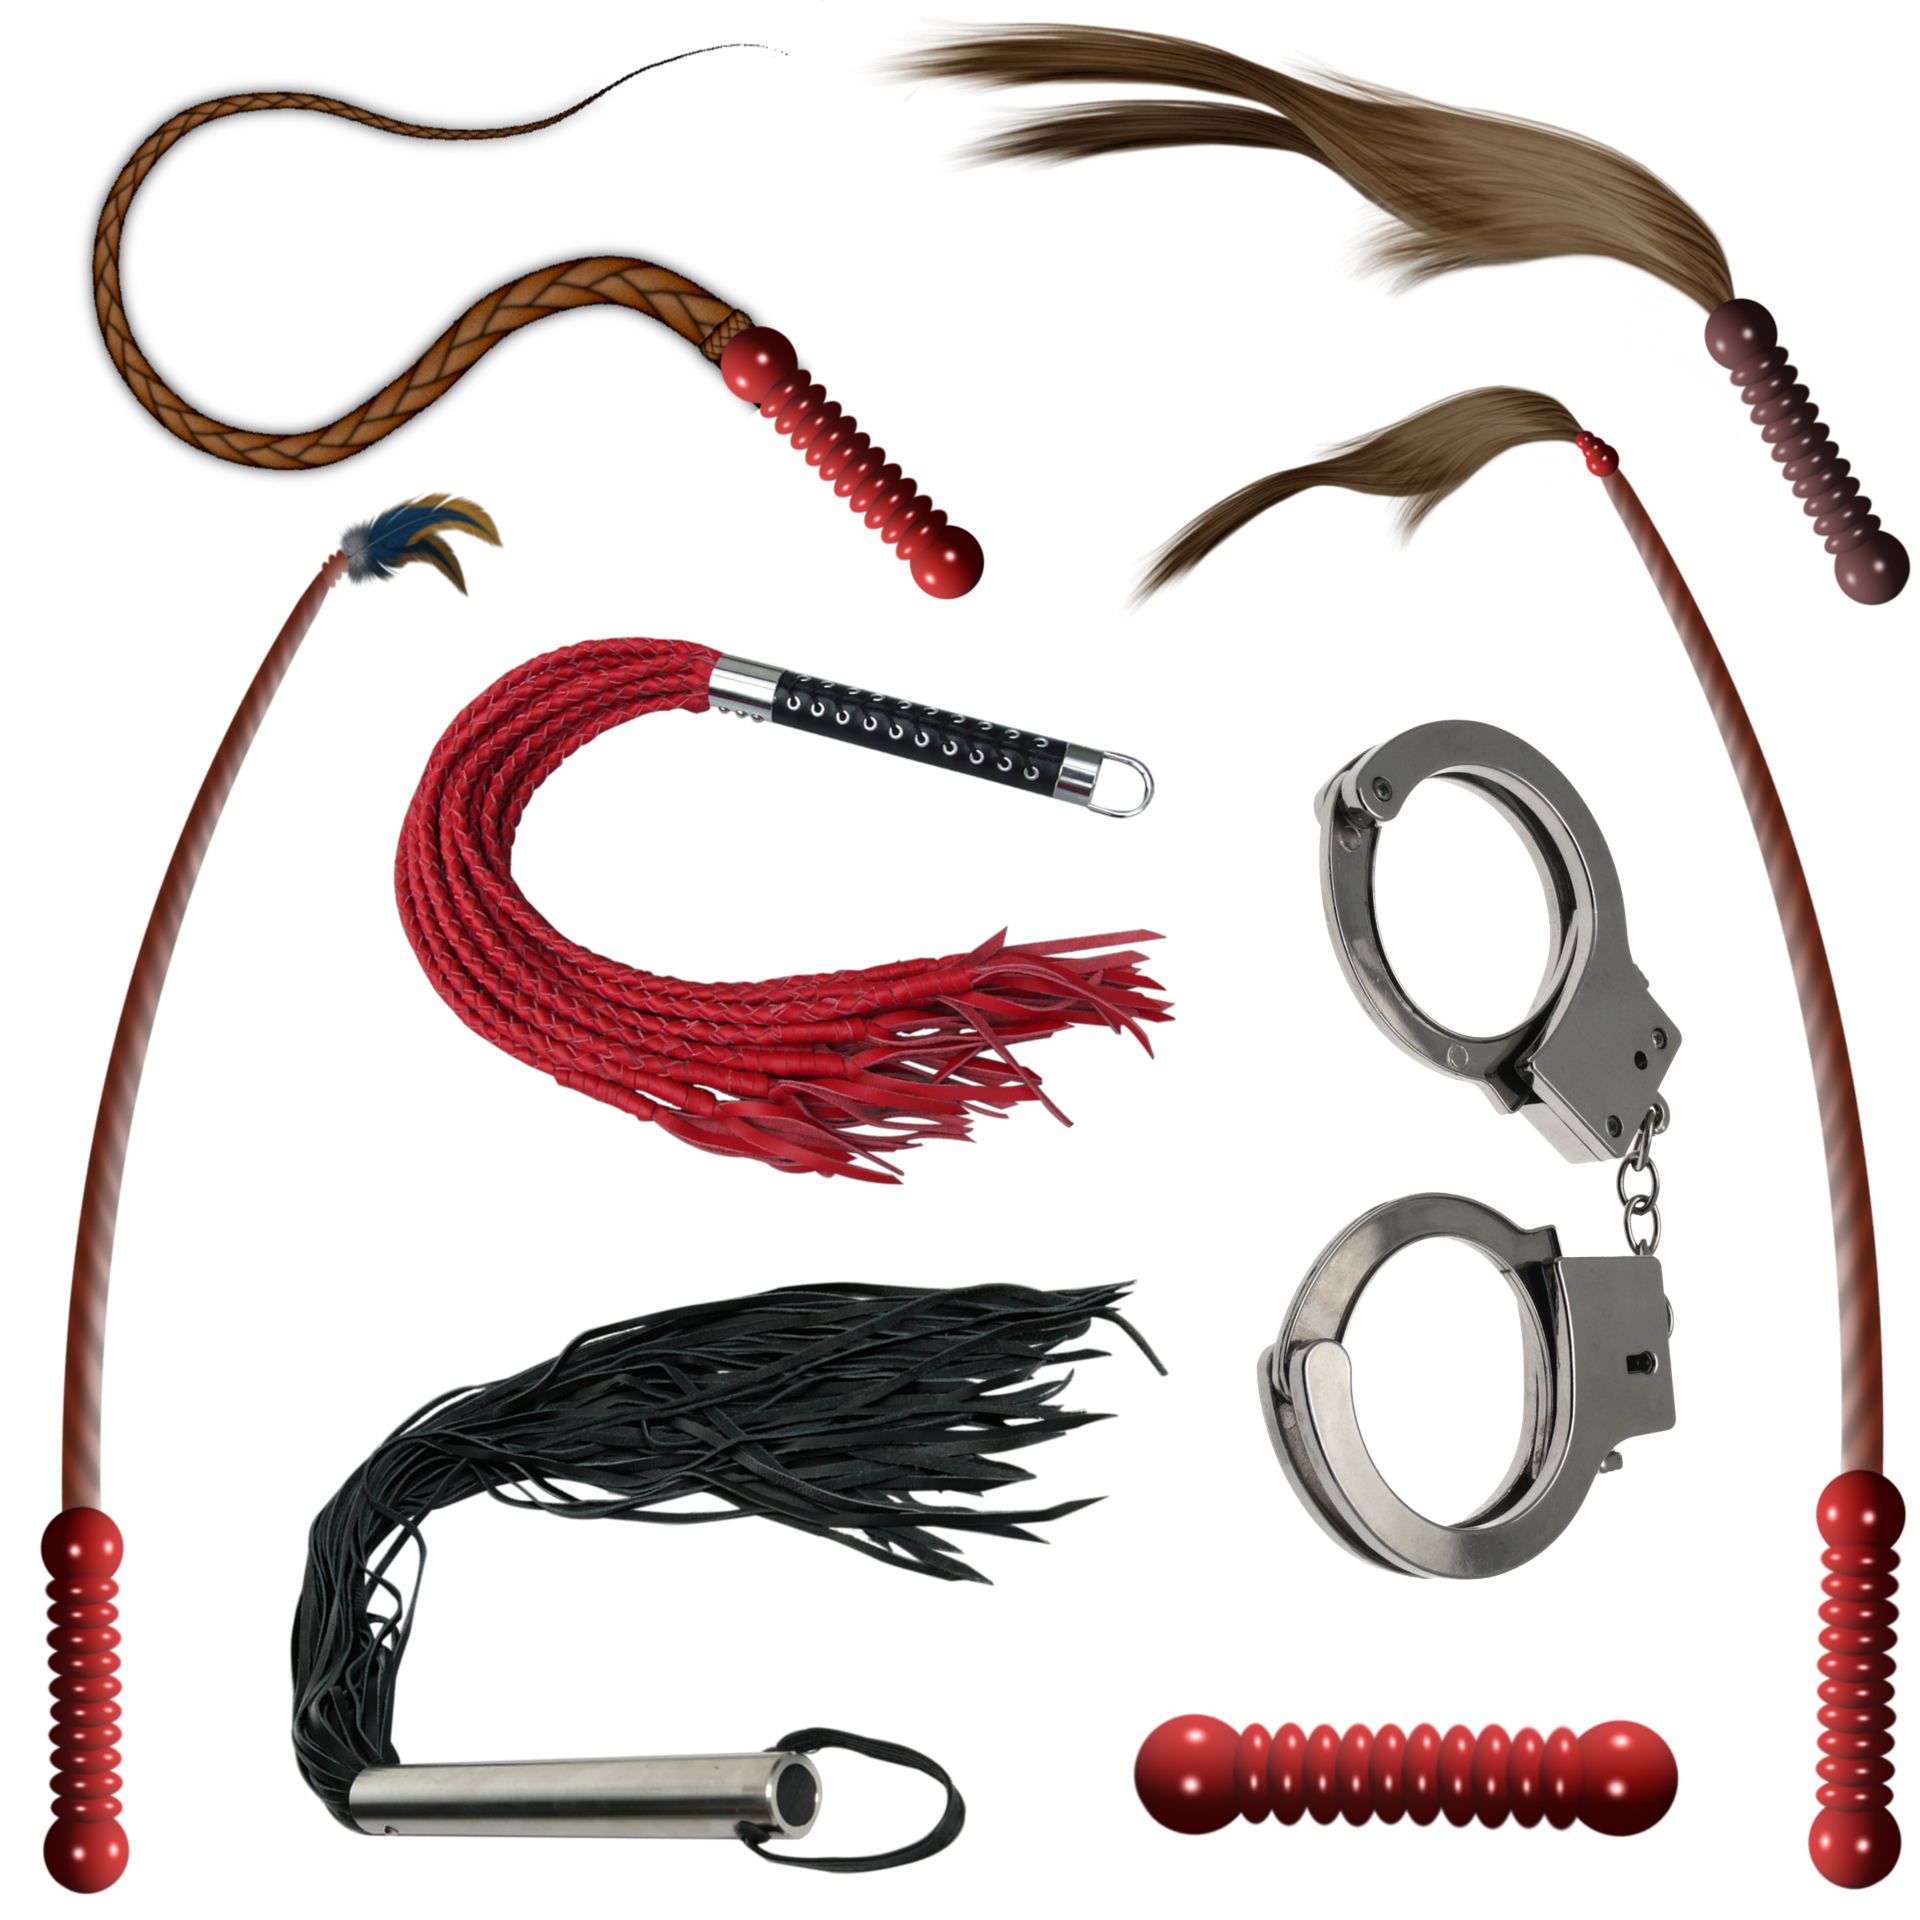 Handcuffs and Whips Kinky Sex Toys